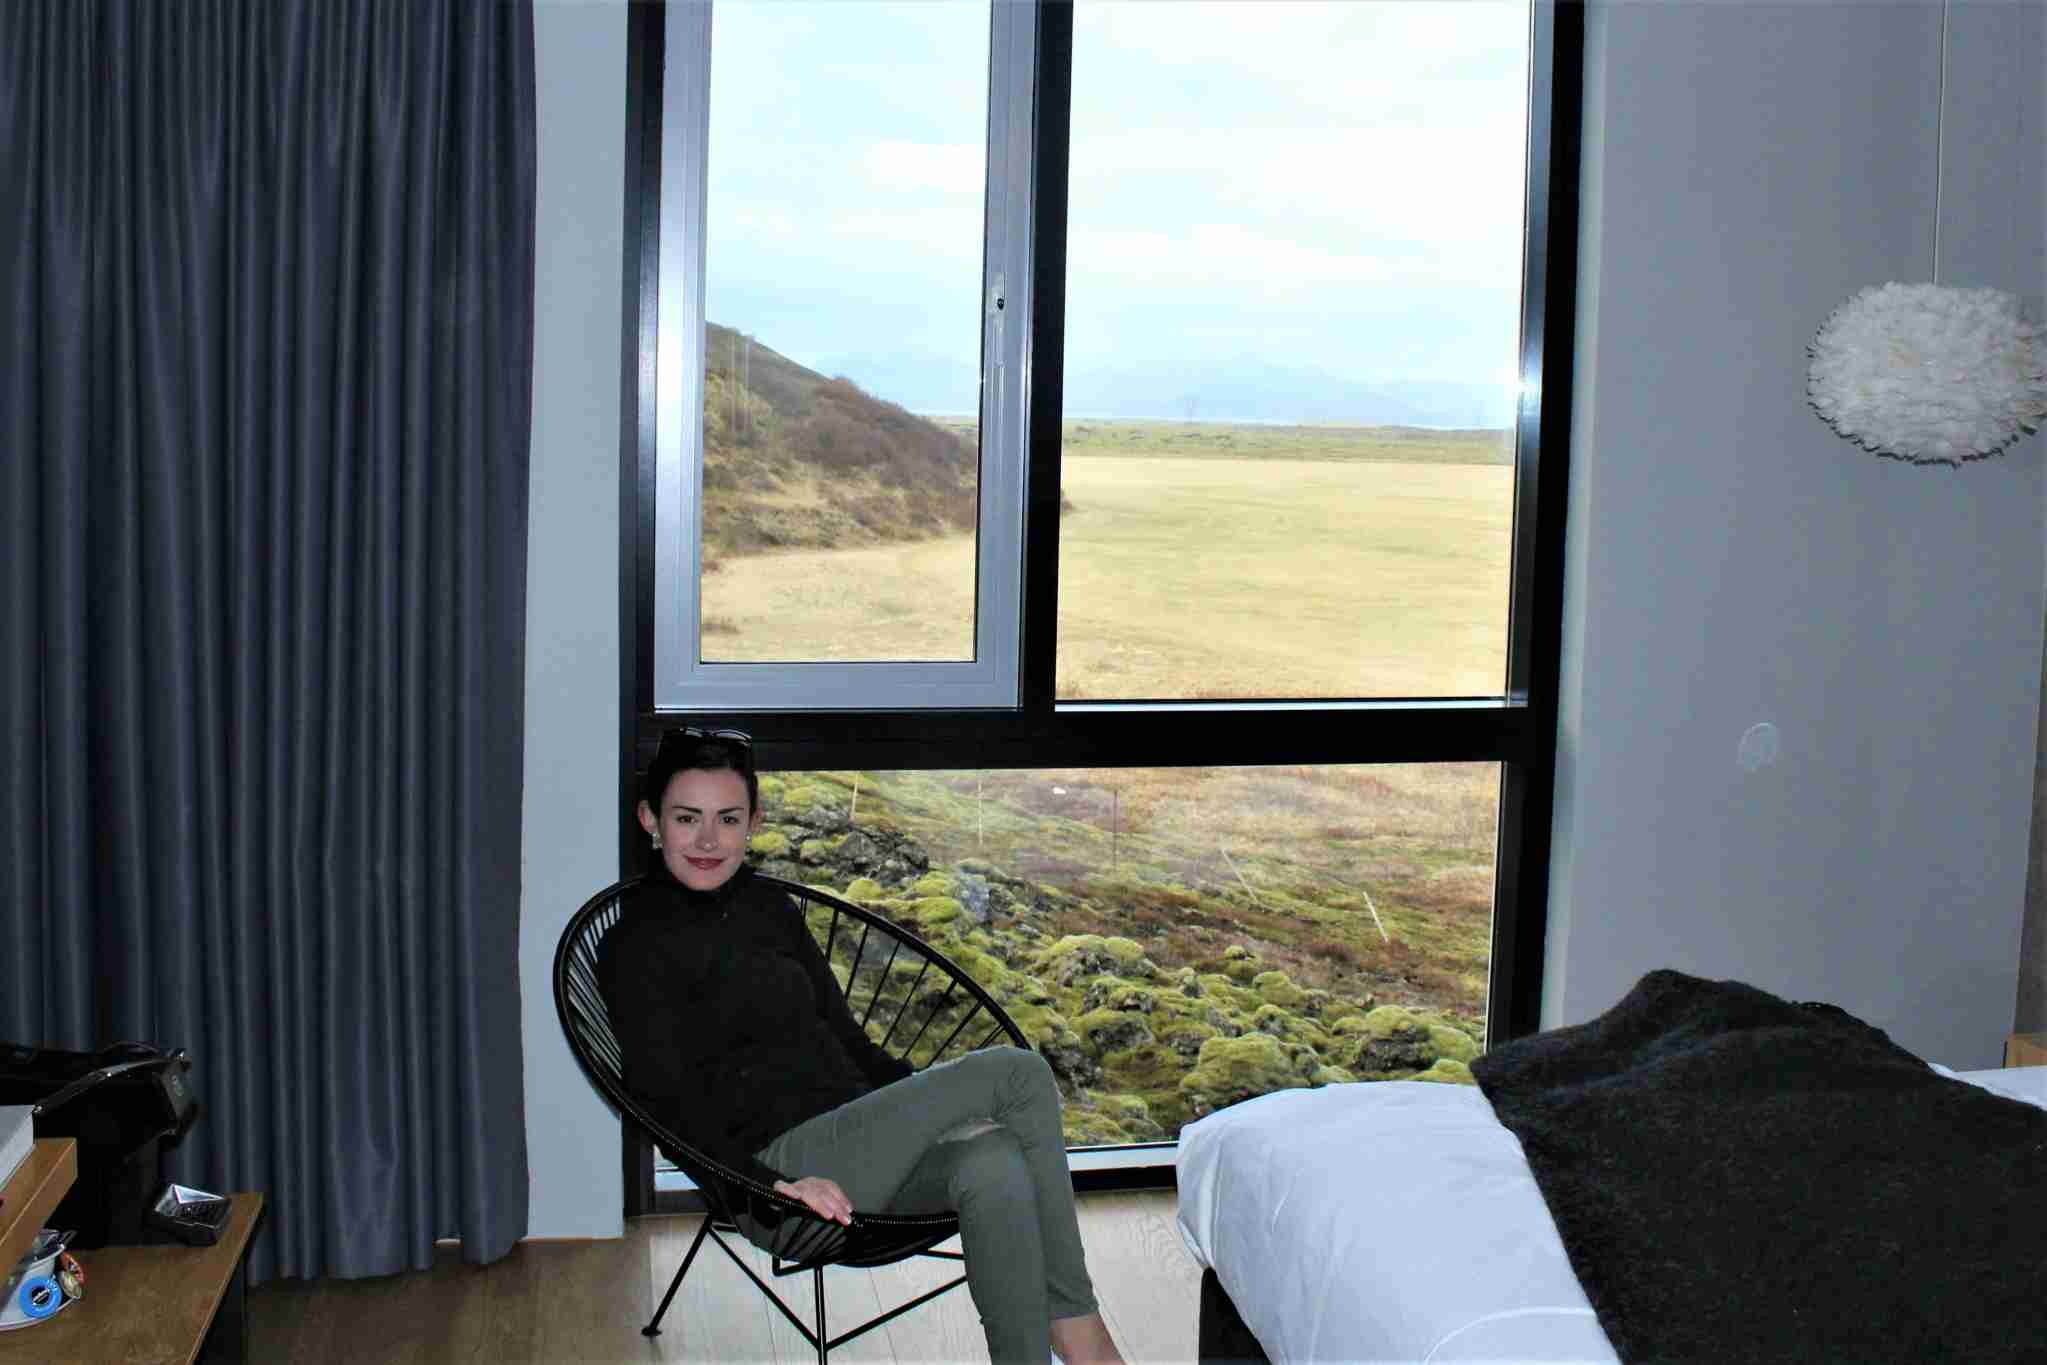 The floor to ceiling windows gave impressive views of the green landscape and nearby geothermal power plant.